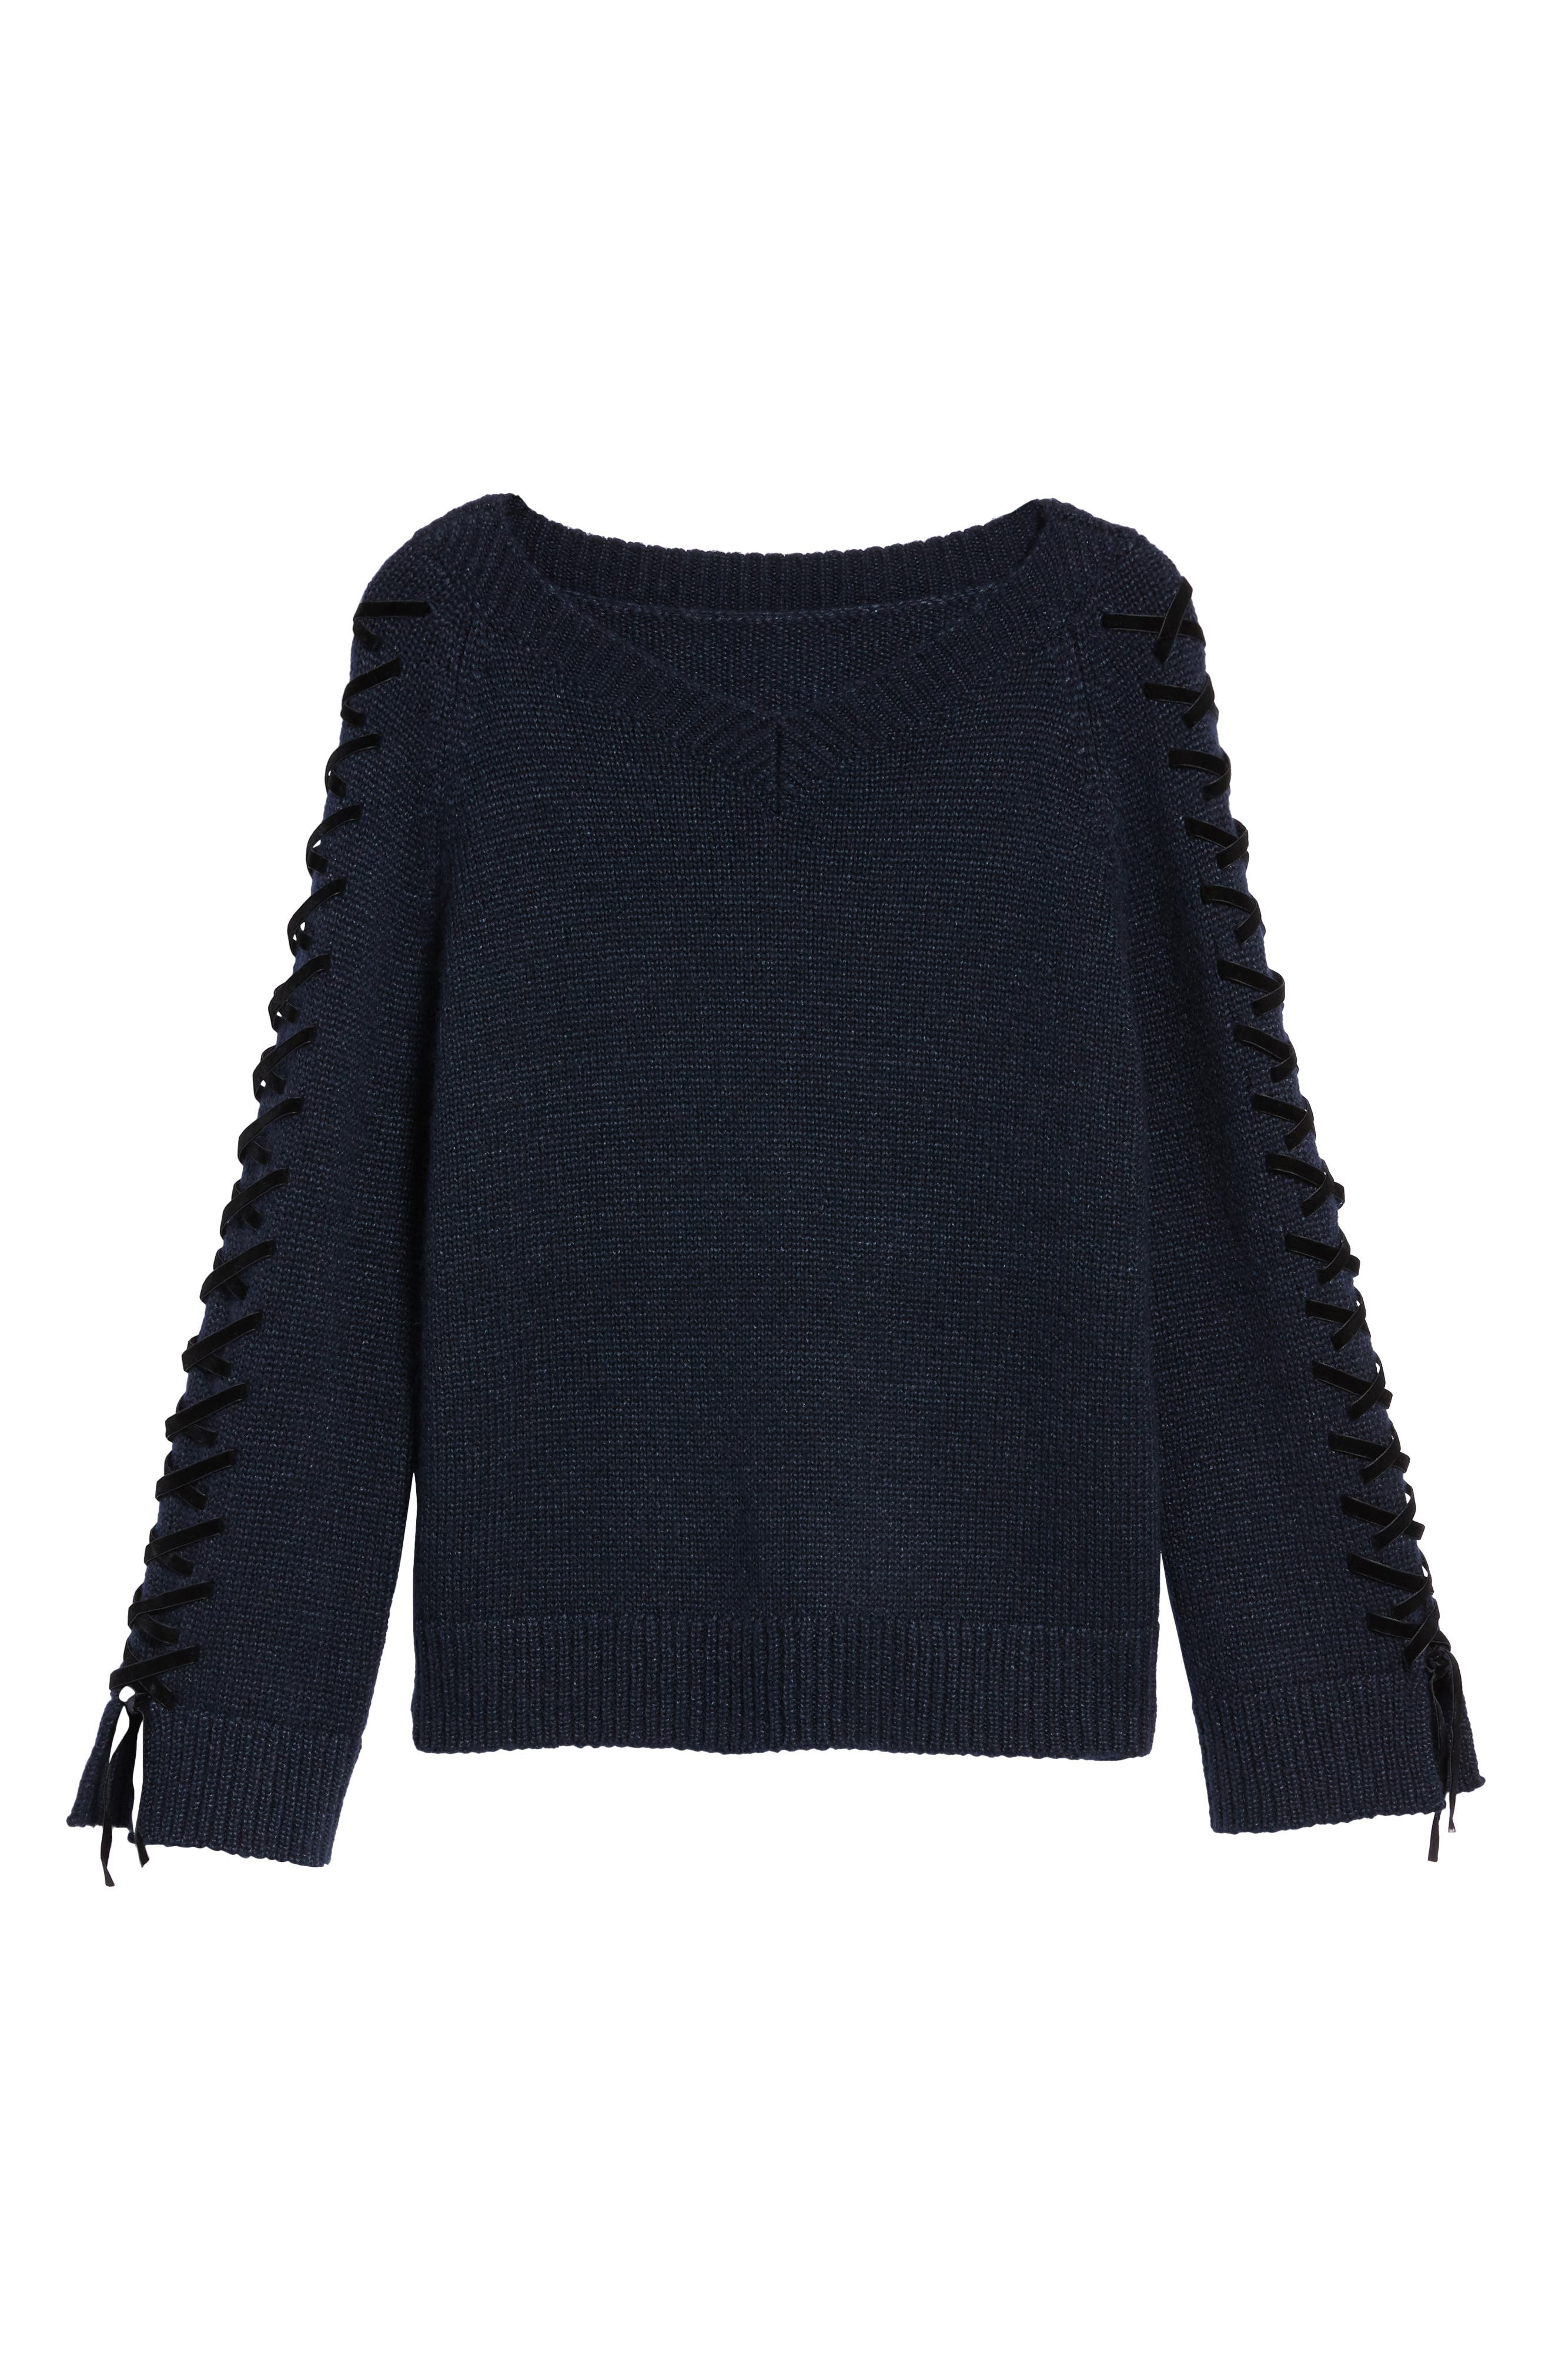 Laced Sleeve Pullover,                             Alternate thumbnail 7, color,                             Navy Night